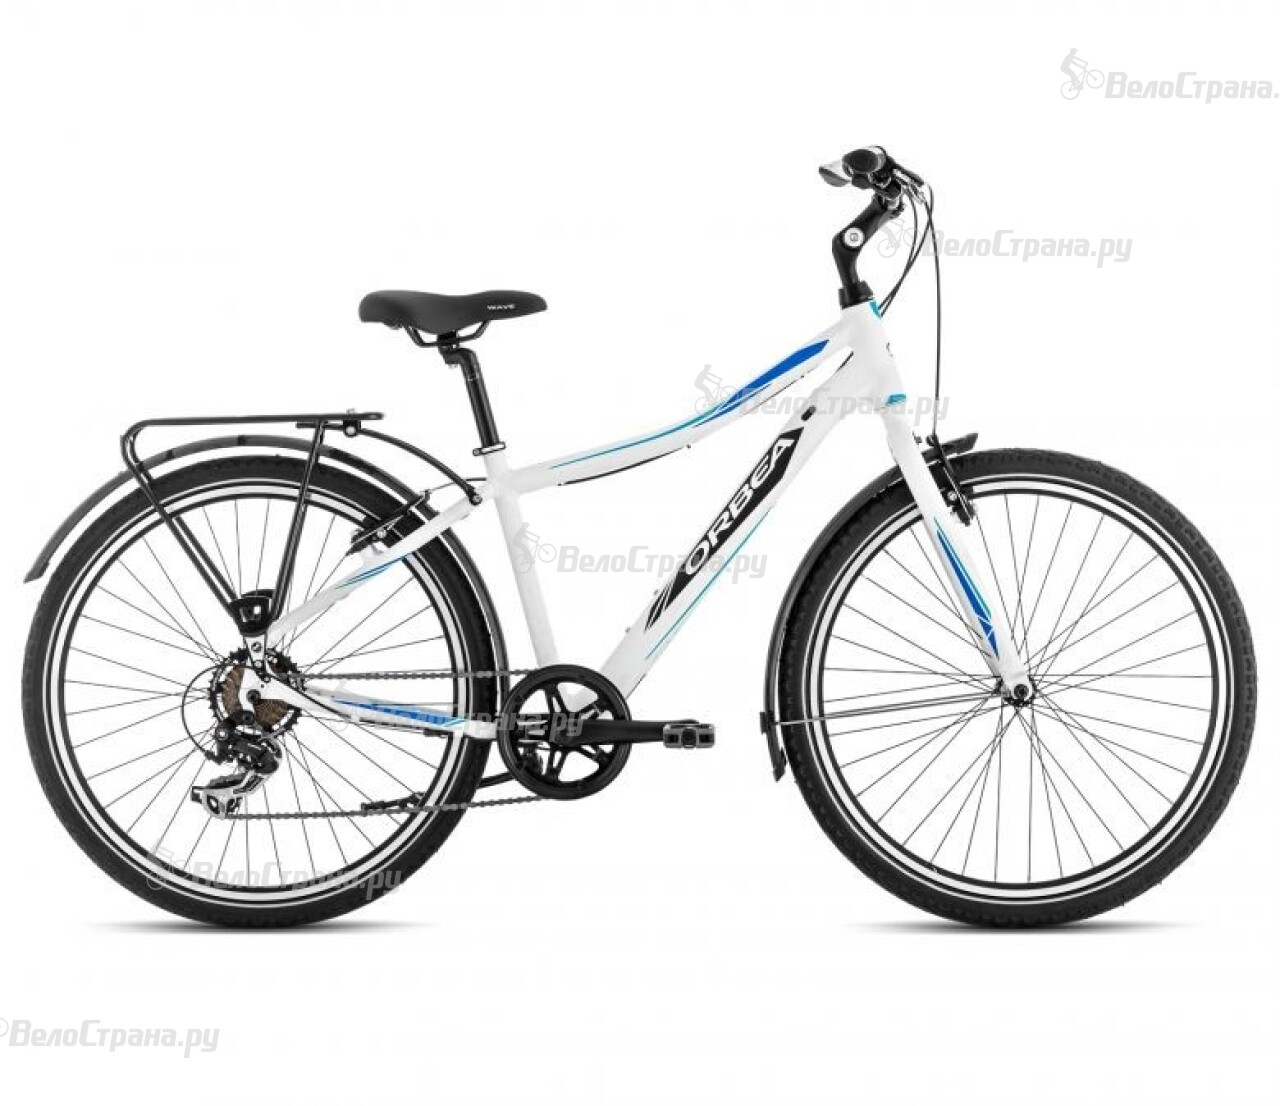 Велосипед Orbea Comfort 26 40 Entrance Eq (2014)